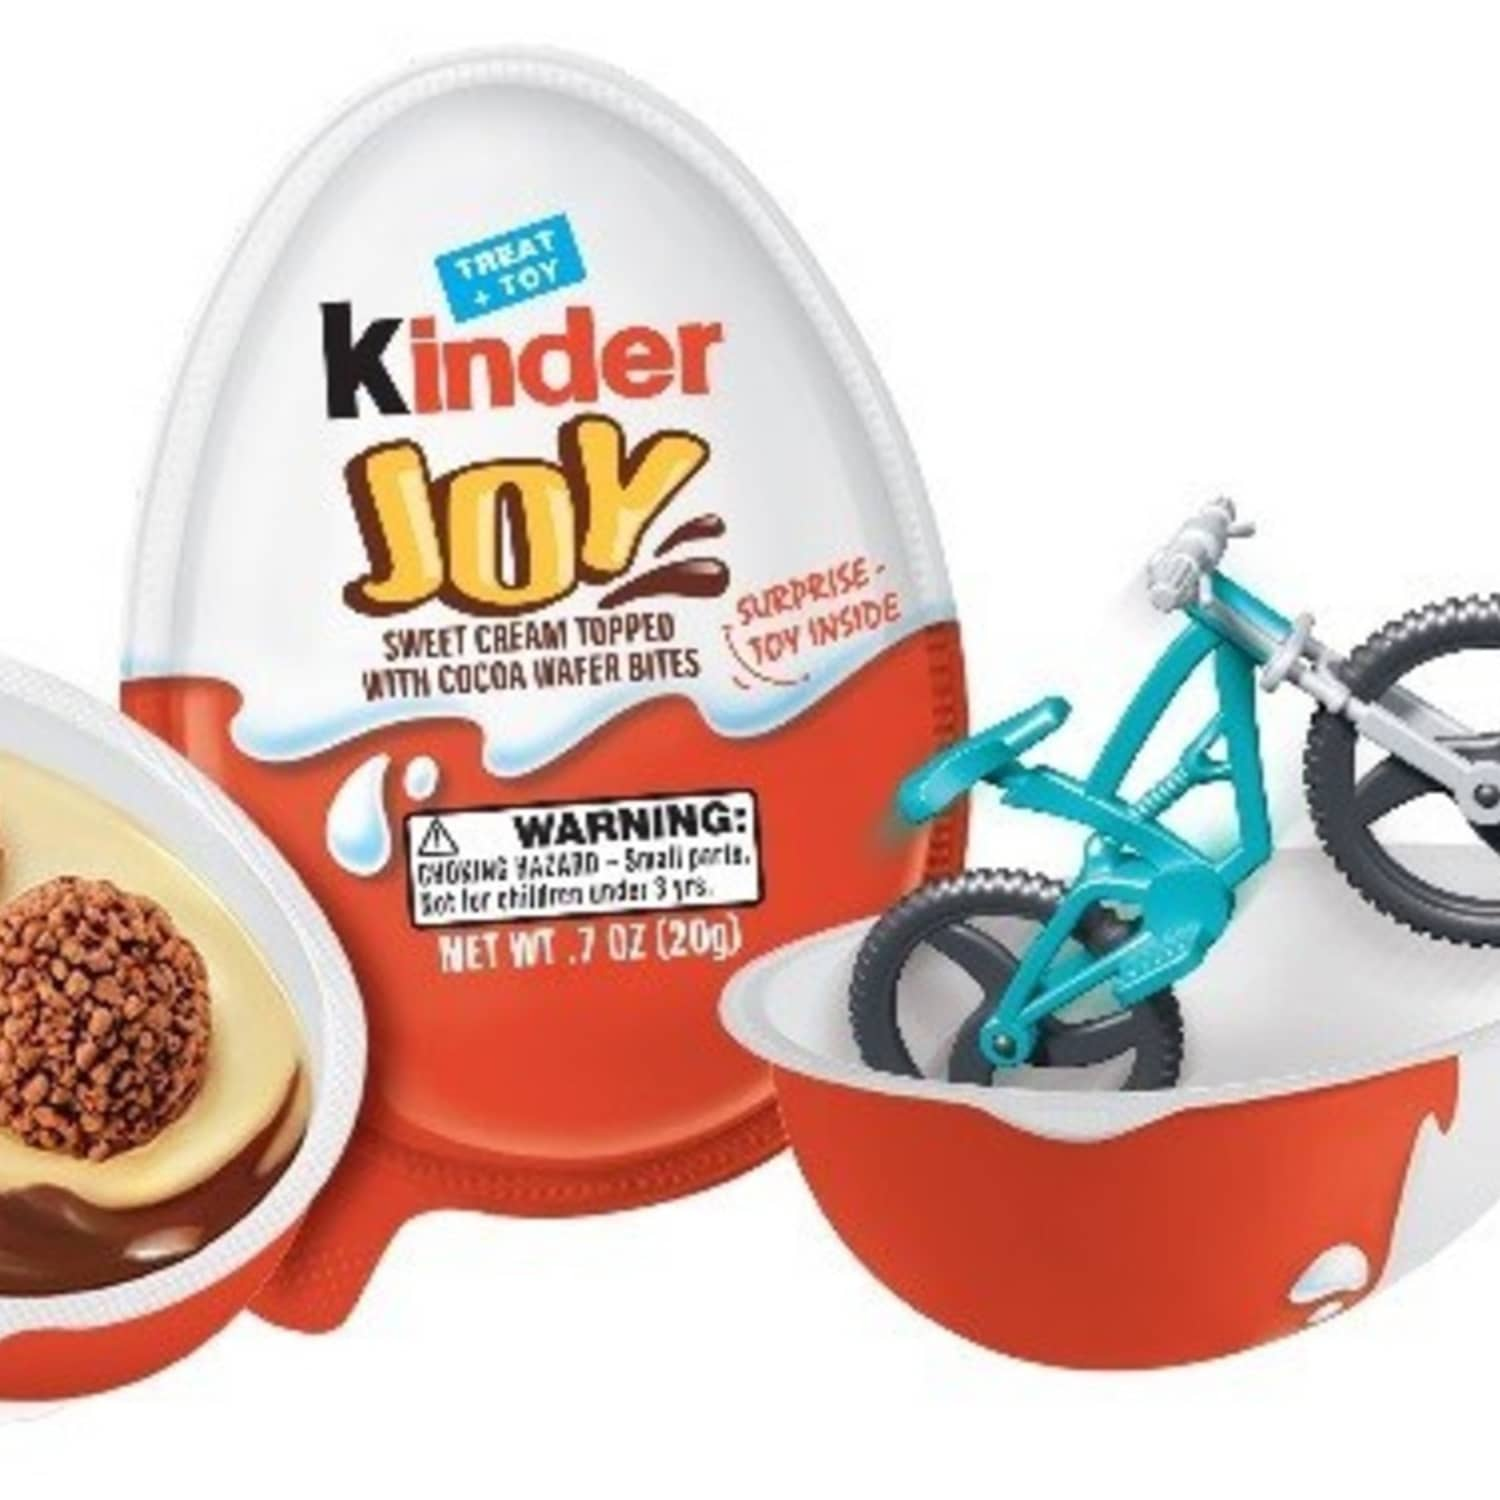 Muffins Kinder Country Kinder Chocolate Eggs Sold In Usa Walmart Black Friday Kitchn